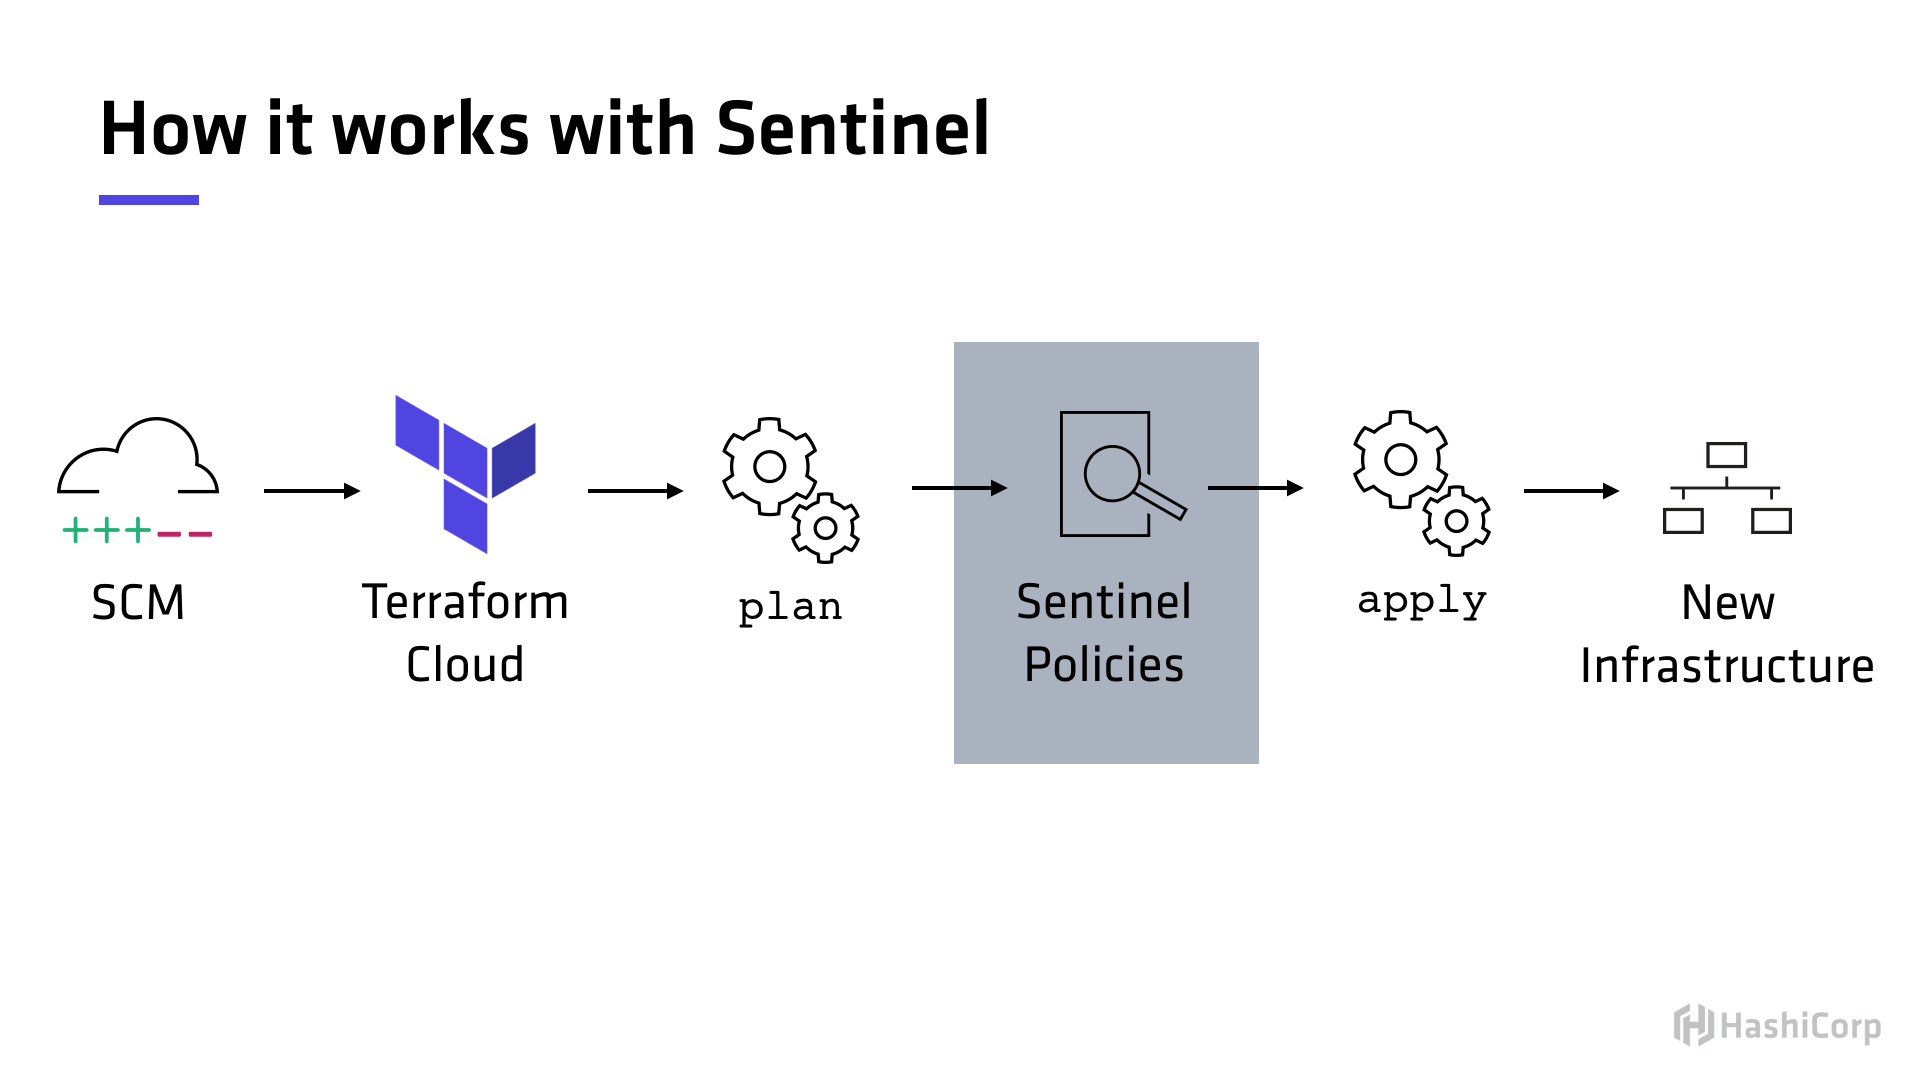 with-sentinel